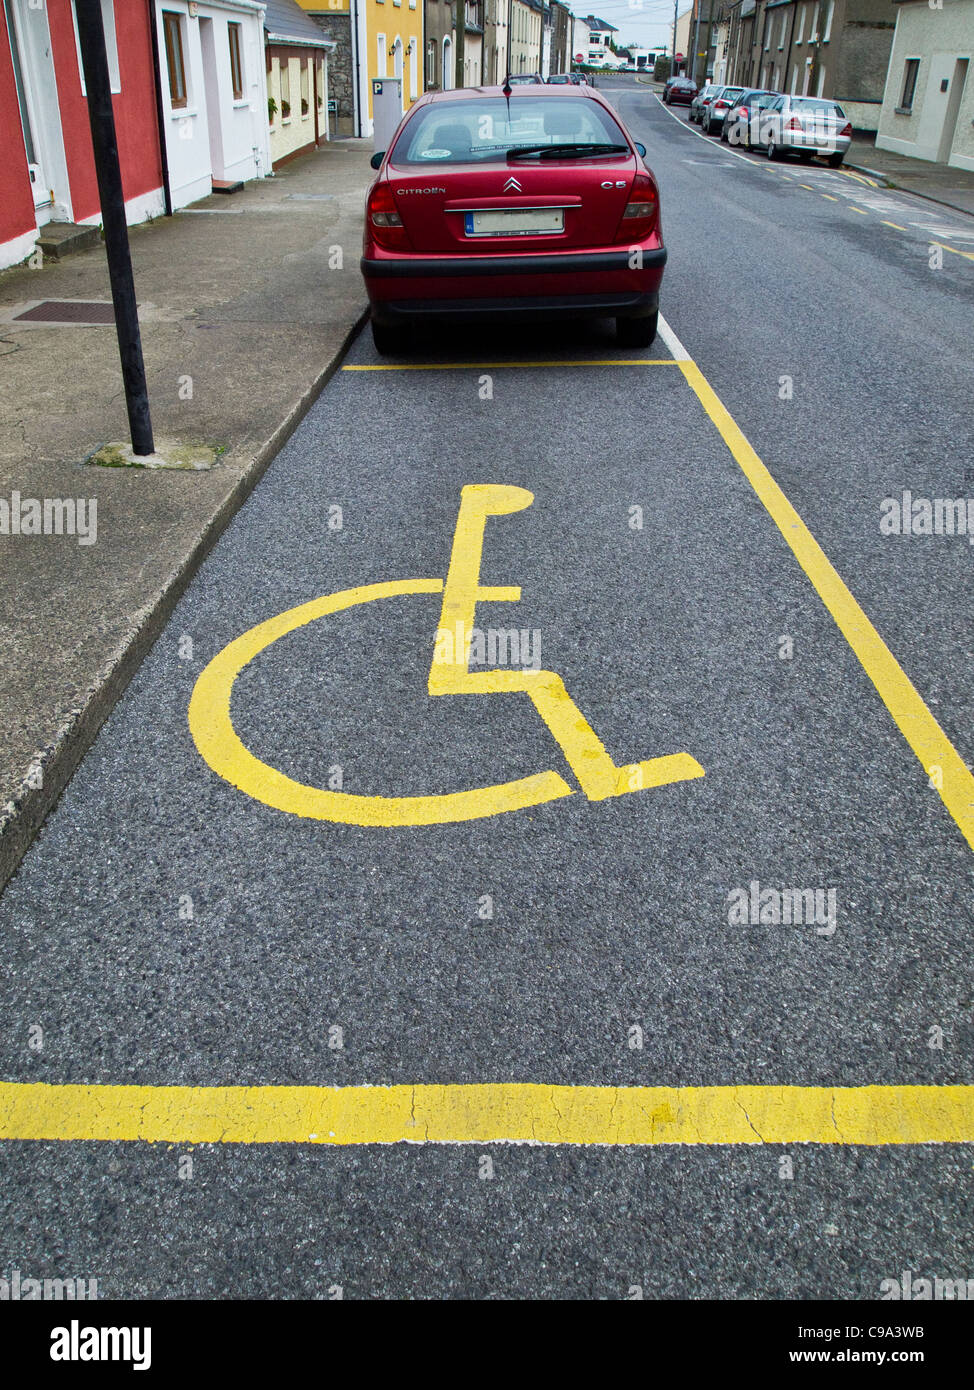 A parking place for handicapped or disabled drivers - Dublin Ireland - marked by the international symbol - Stock Image